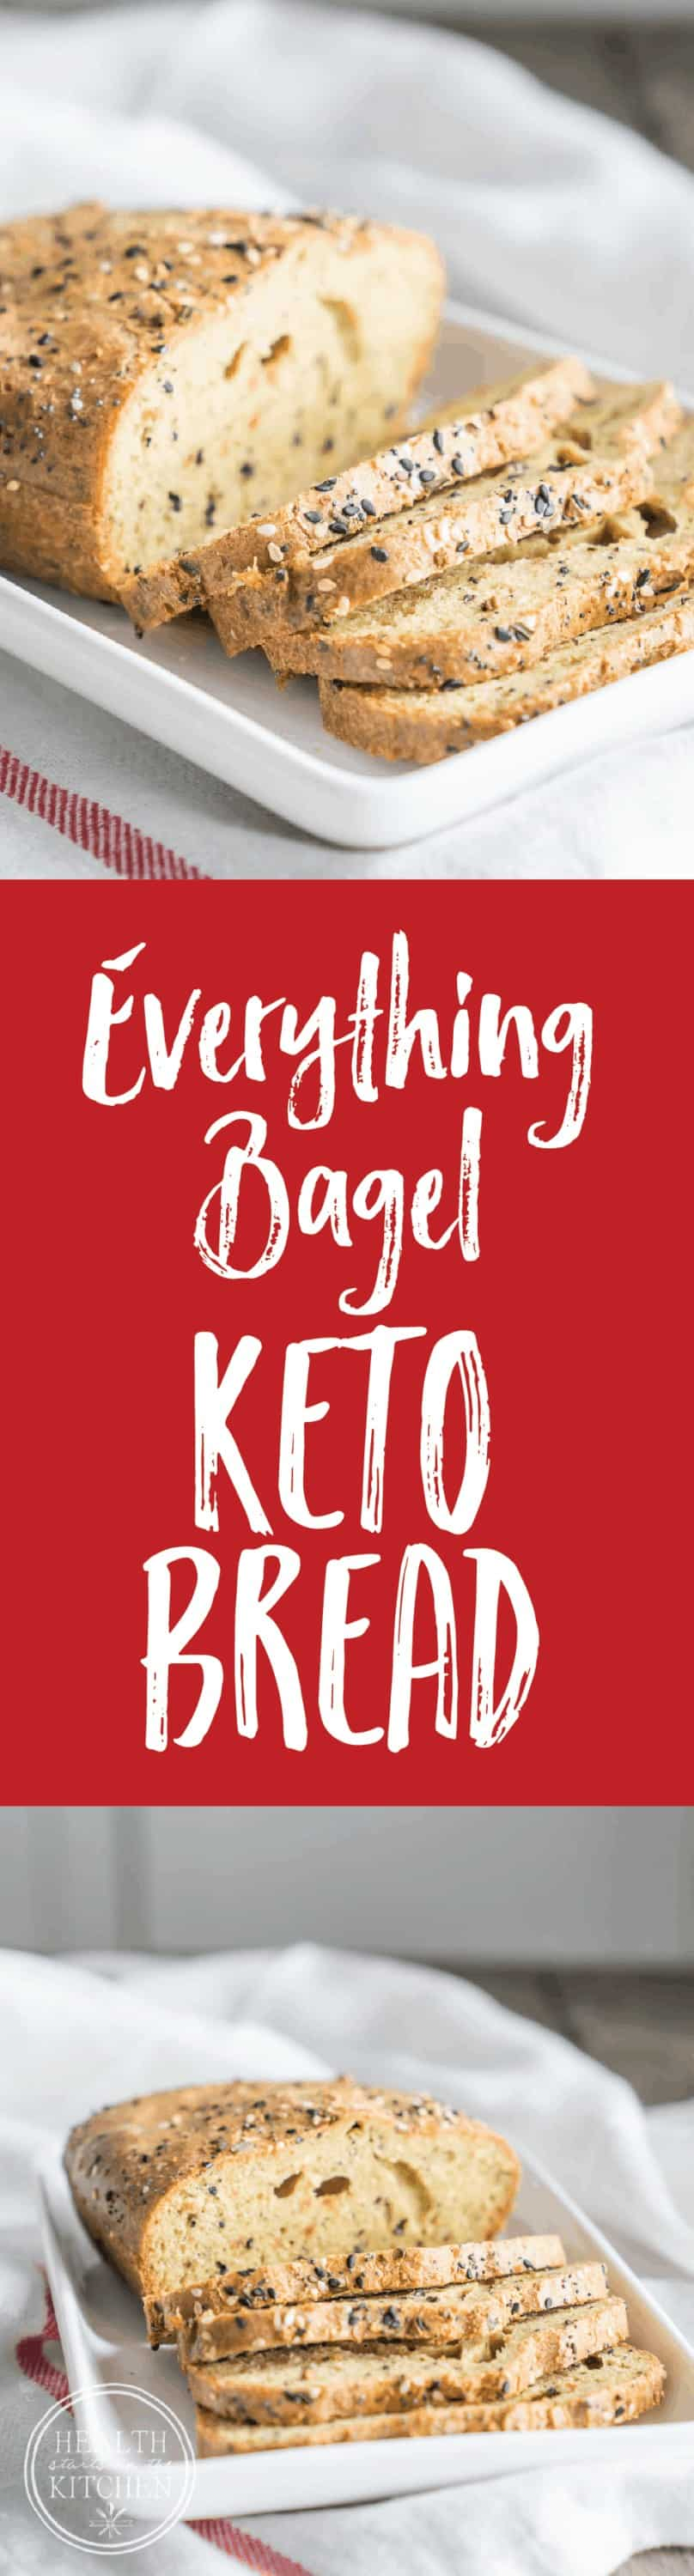 Everything Bagel Low-Carb Keto Bread